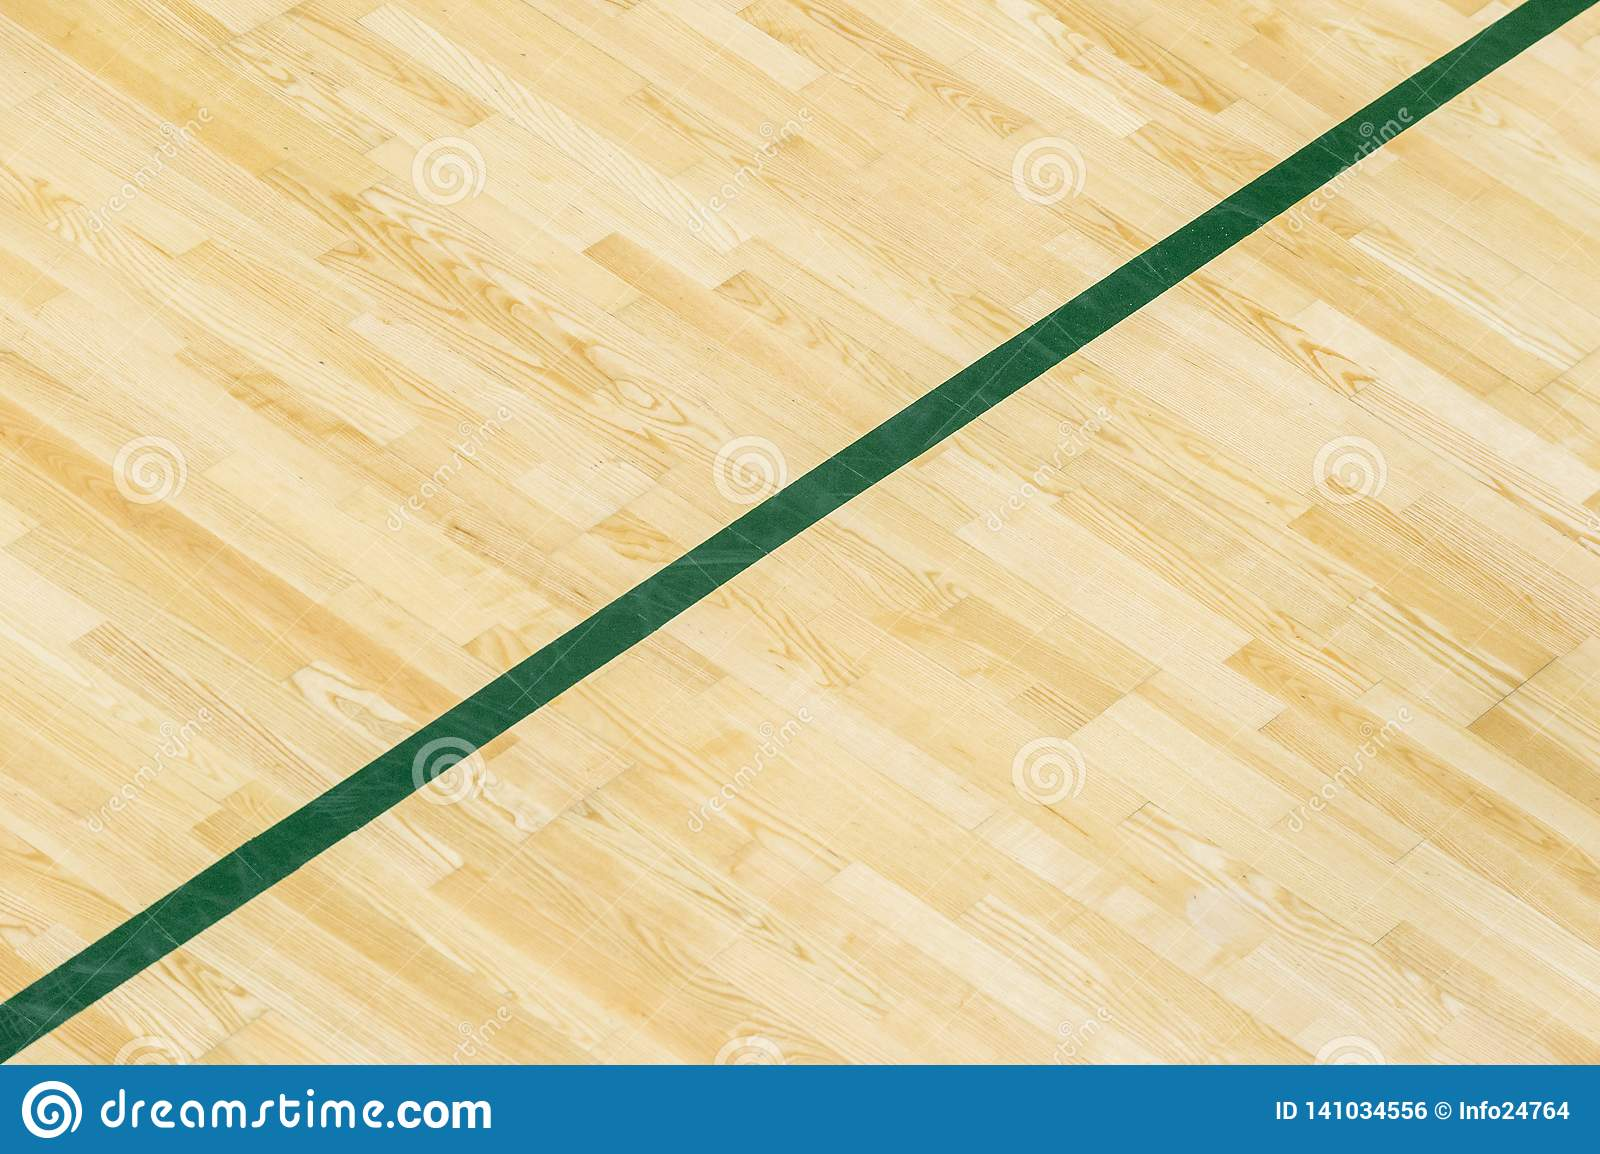 Green line on the gymnasium floor for assign sports court. Badminton, Futsal, Volleyball and Basketball court